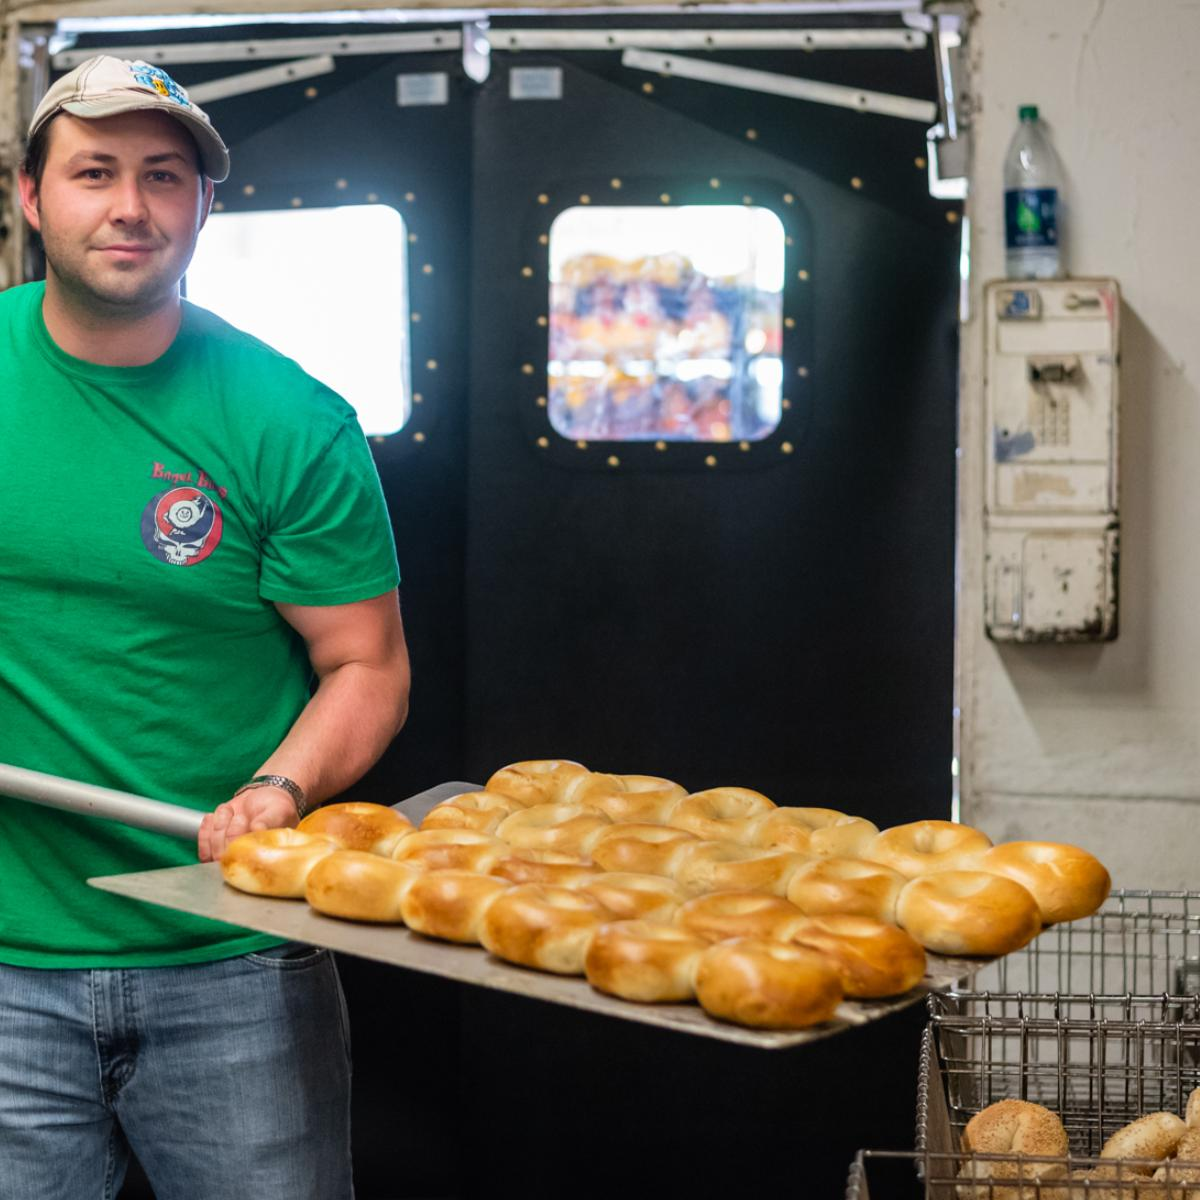 No matter the question, bagels are always the answer. #theoriginalbagelboss<br>http://pic.twitter.com/p8XQ6PxiTb